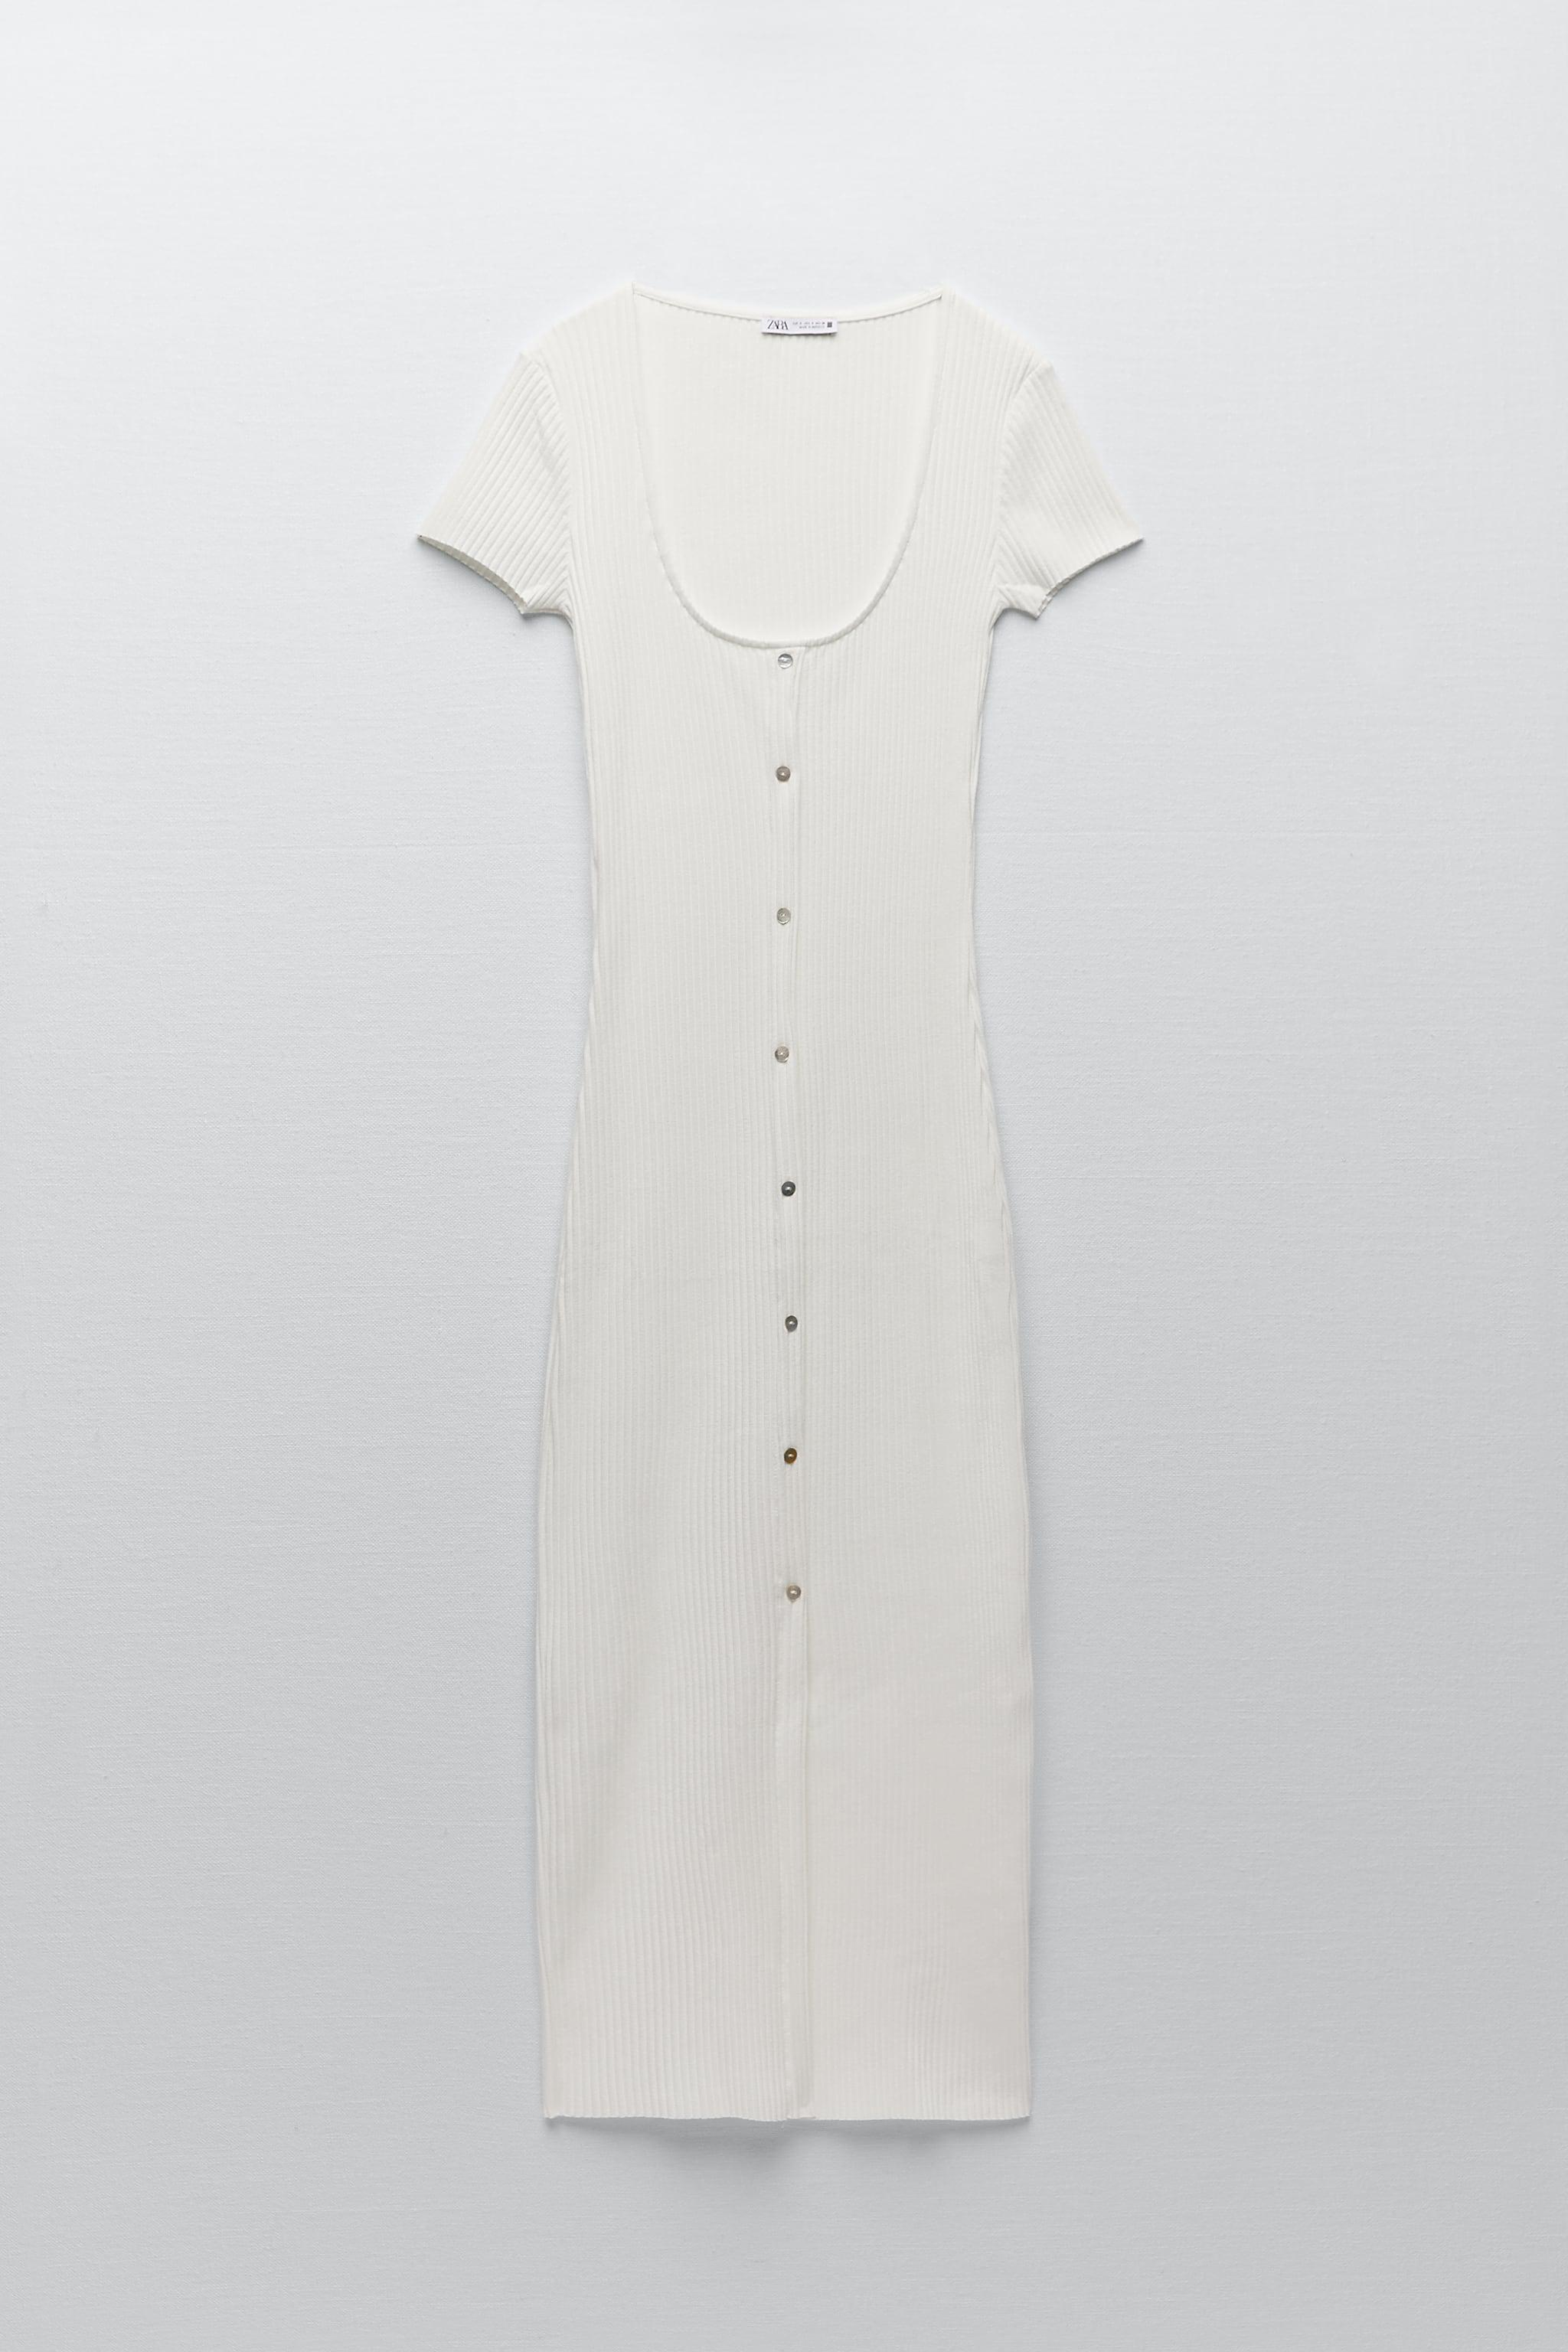 RIBBED DRESS WITH BUTTONS 5